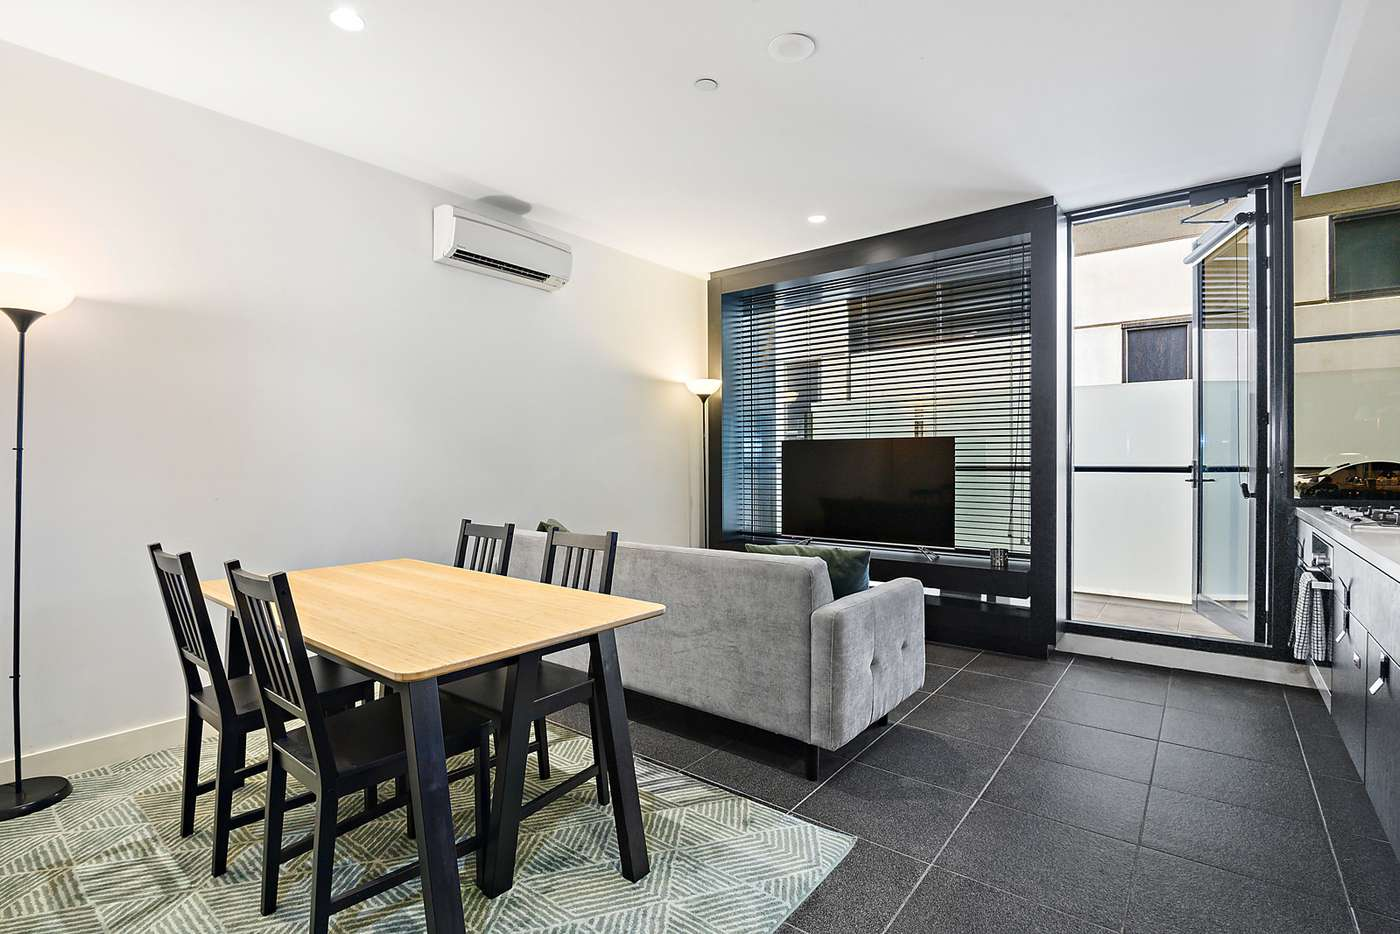 Main view of Homely apartment listing, 1108/12-14 Claremont Street, South Yarra VIC 3141